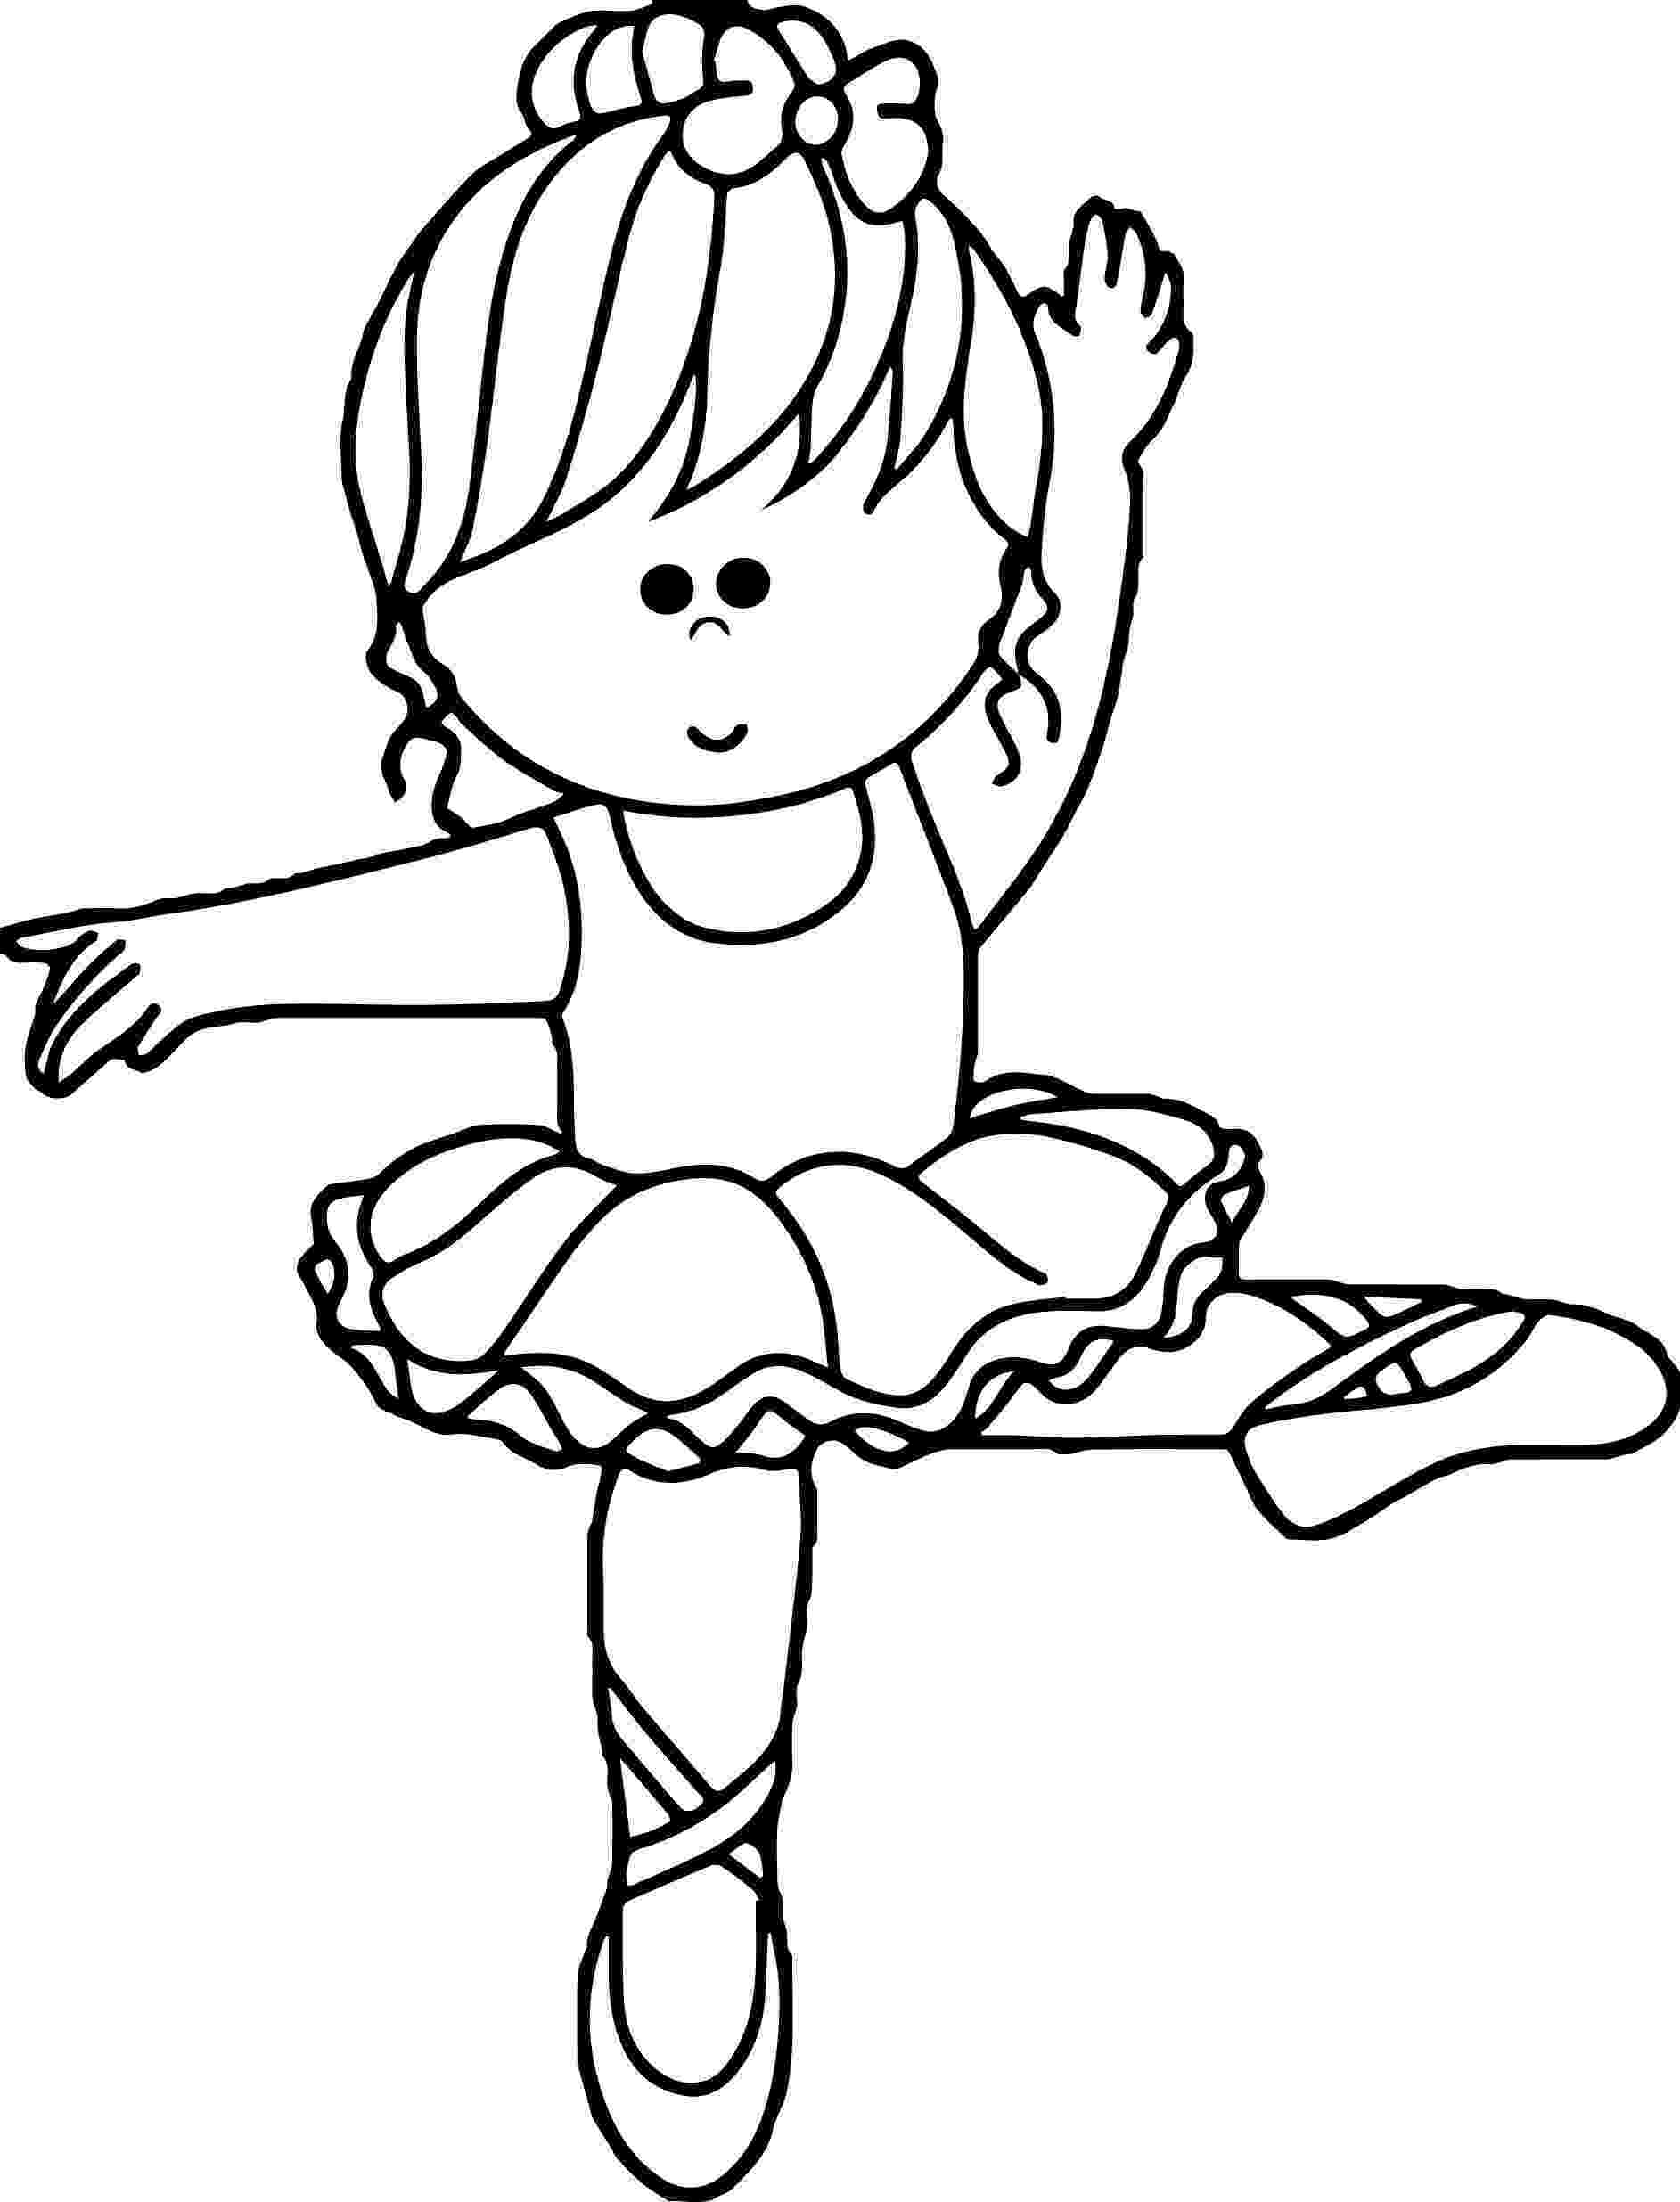 printable coloring pages ballerina ballet coloring pages getcoloringpagescom coloring printable pages ballerina 1 1